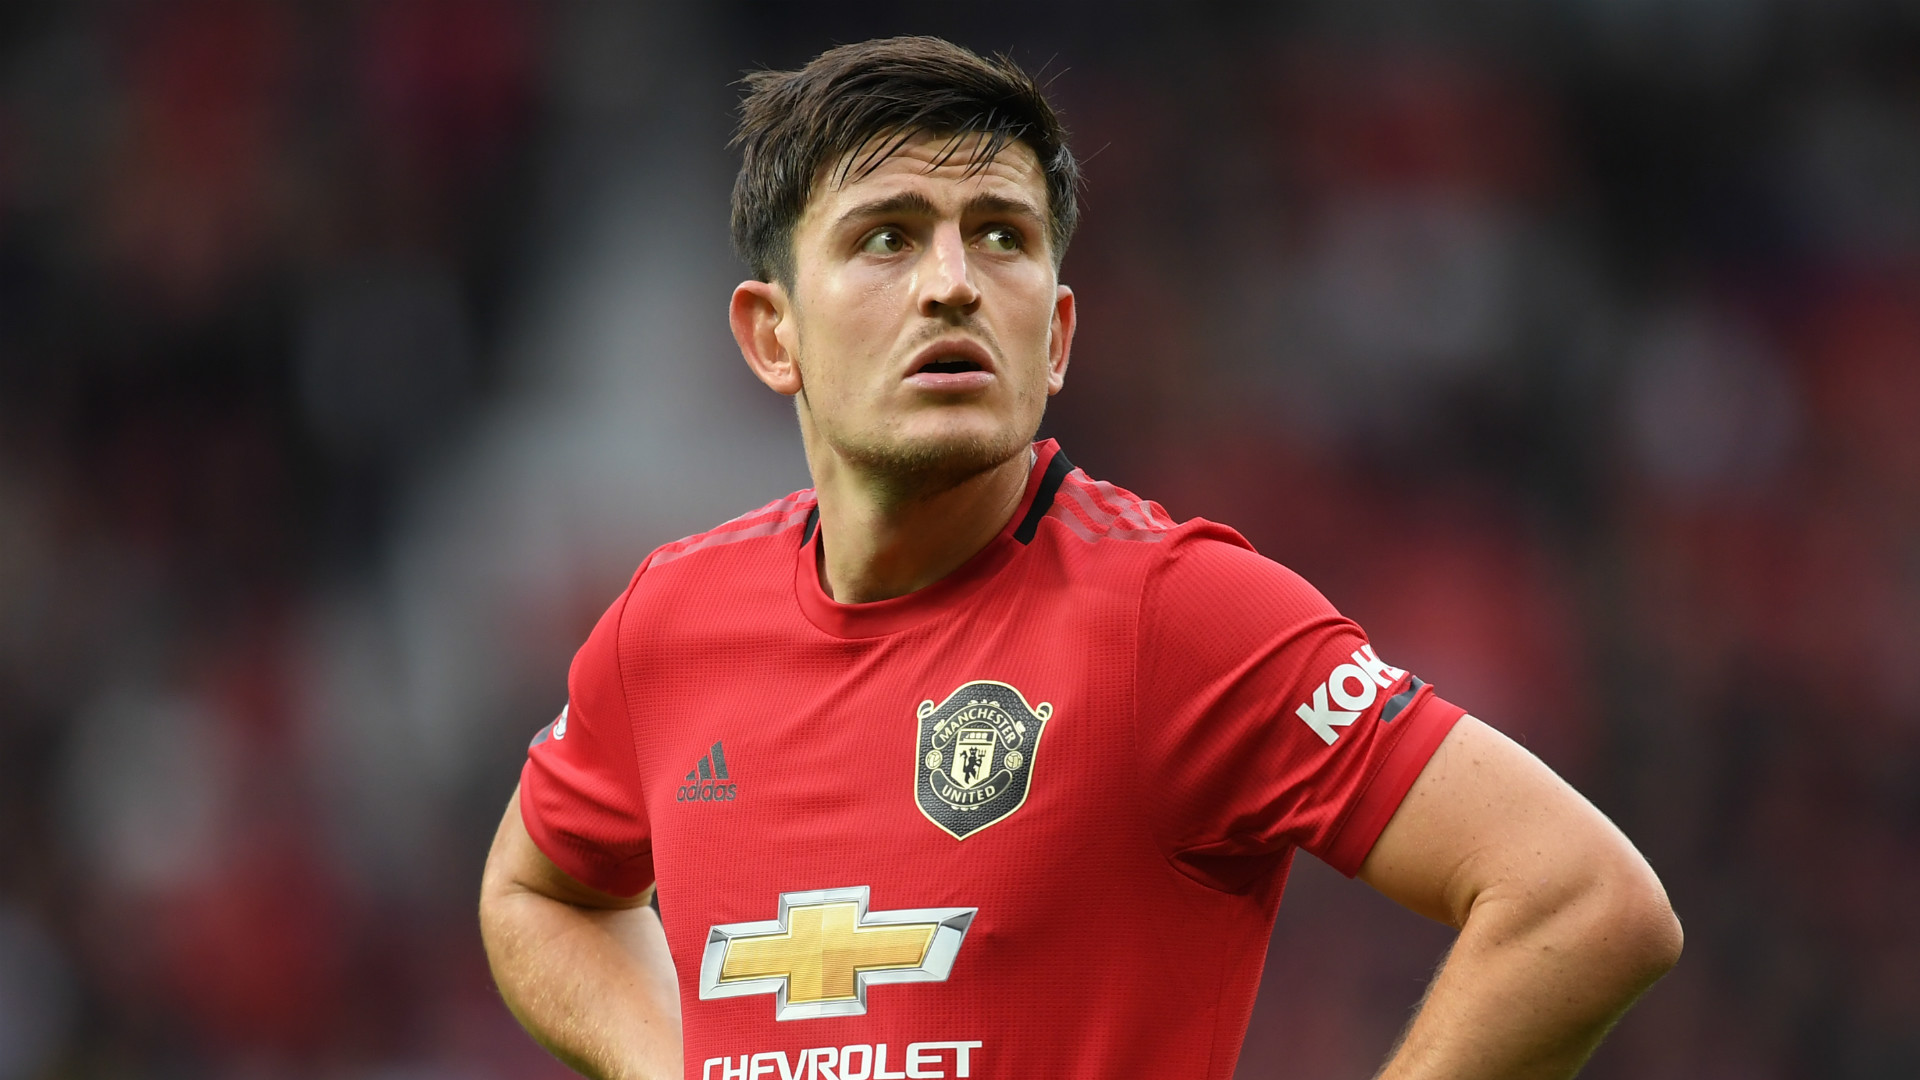 Harry Maguire Manchester United 2019-20